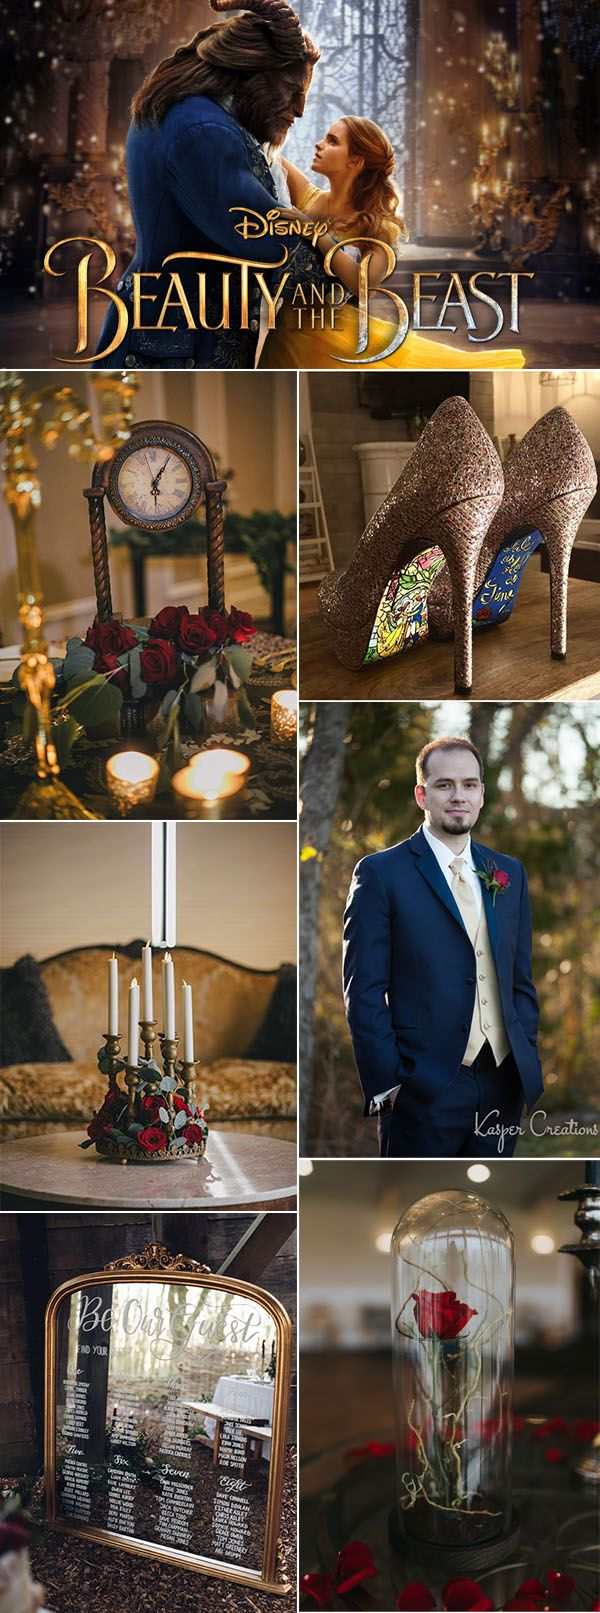 beauty and the beast film inspired winter wedding inspitation ideas